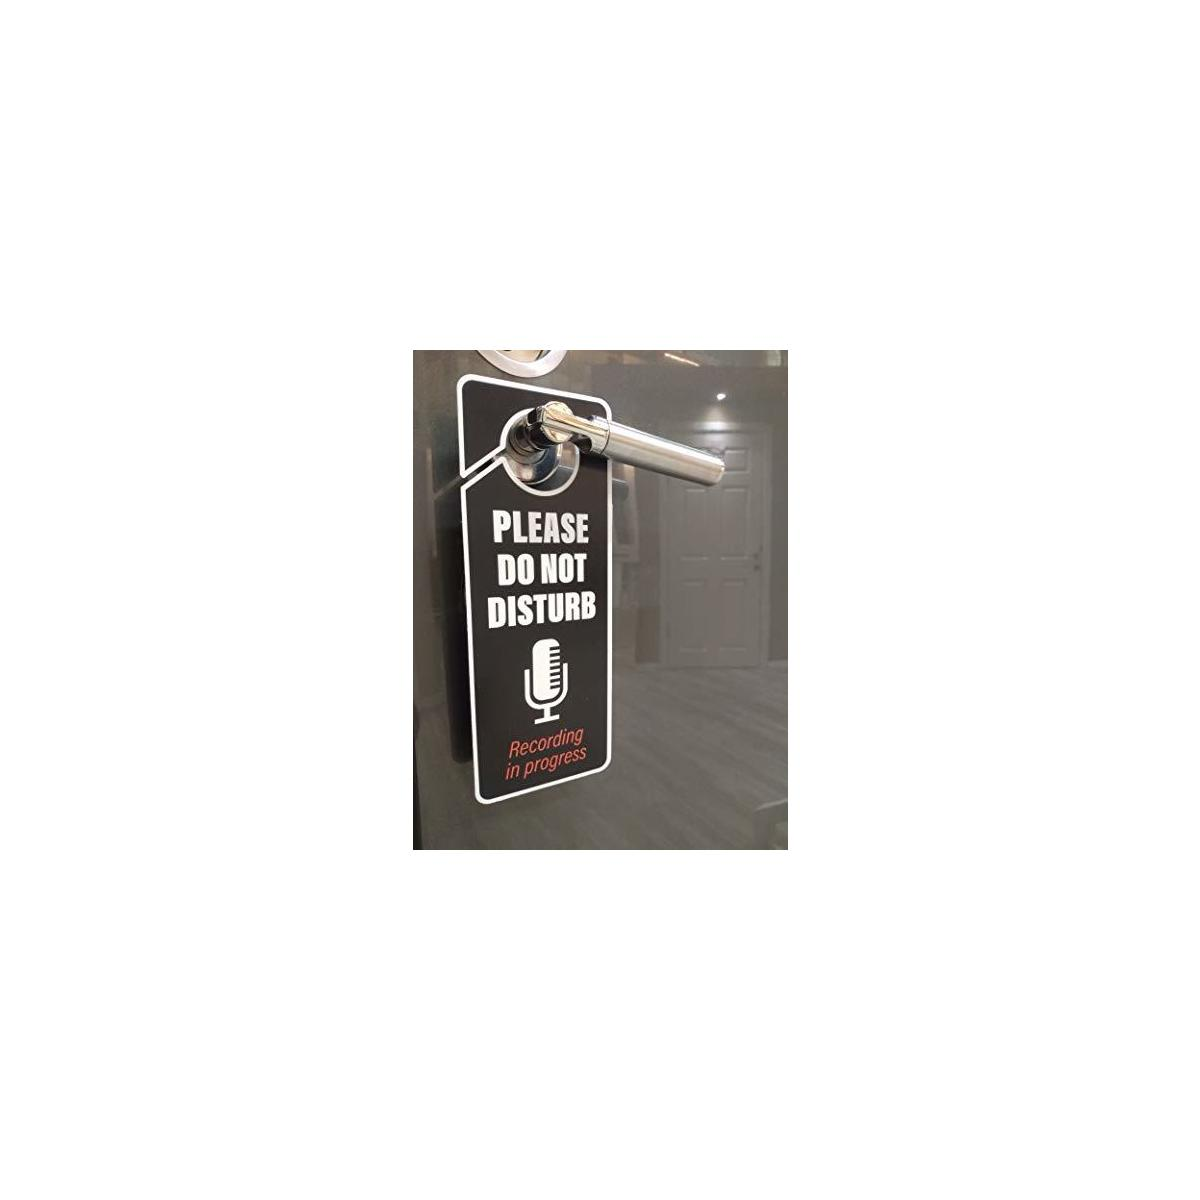 Recording in Progress - Please Do Not Disturb Sign, Door Knob Hanger 2 Pack, Double Sided, Ideal for Using in Any Room.